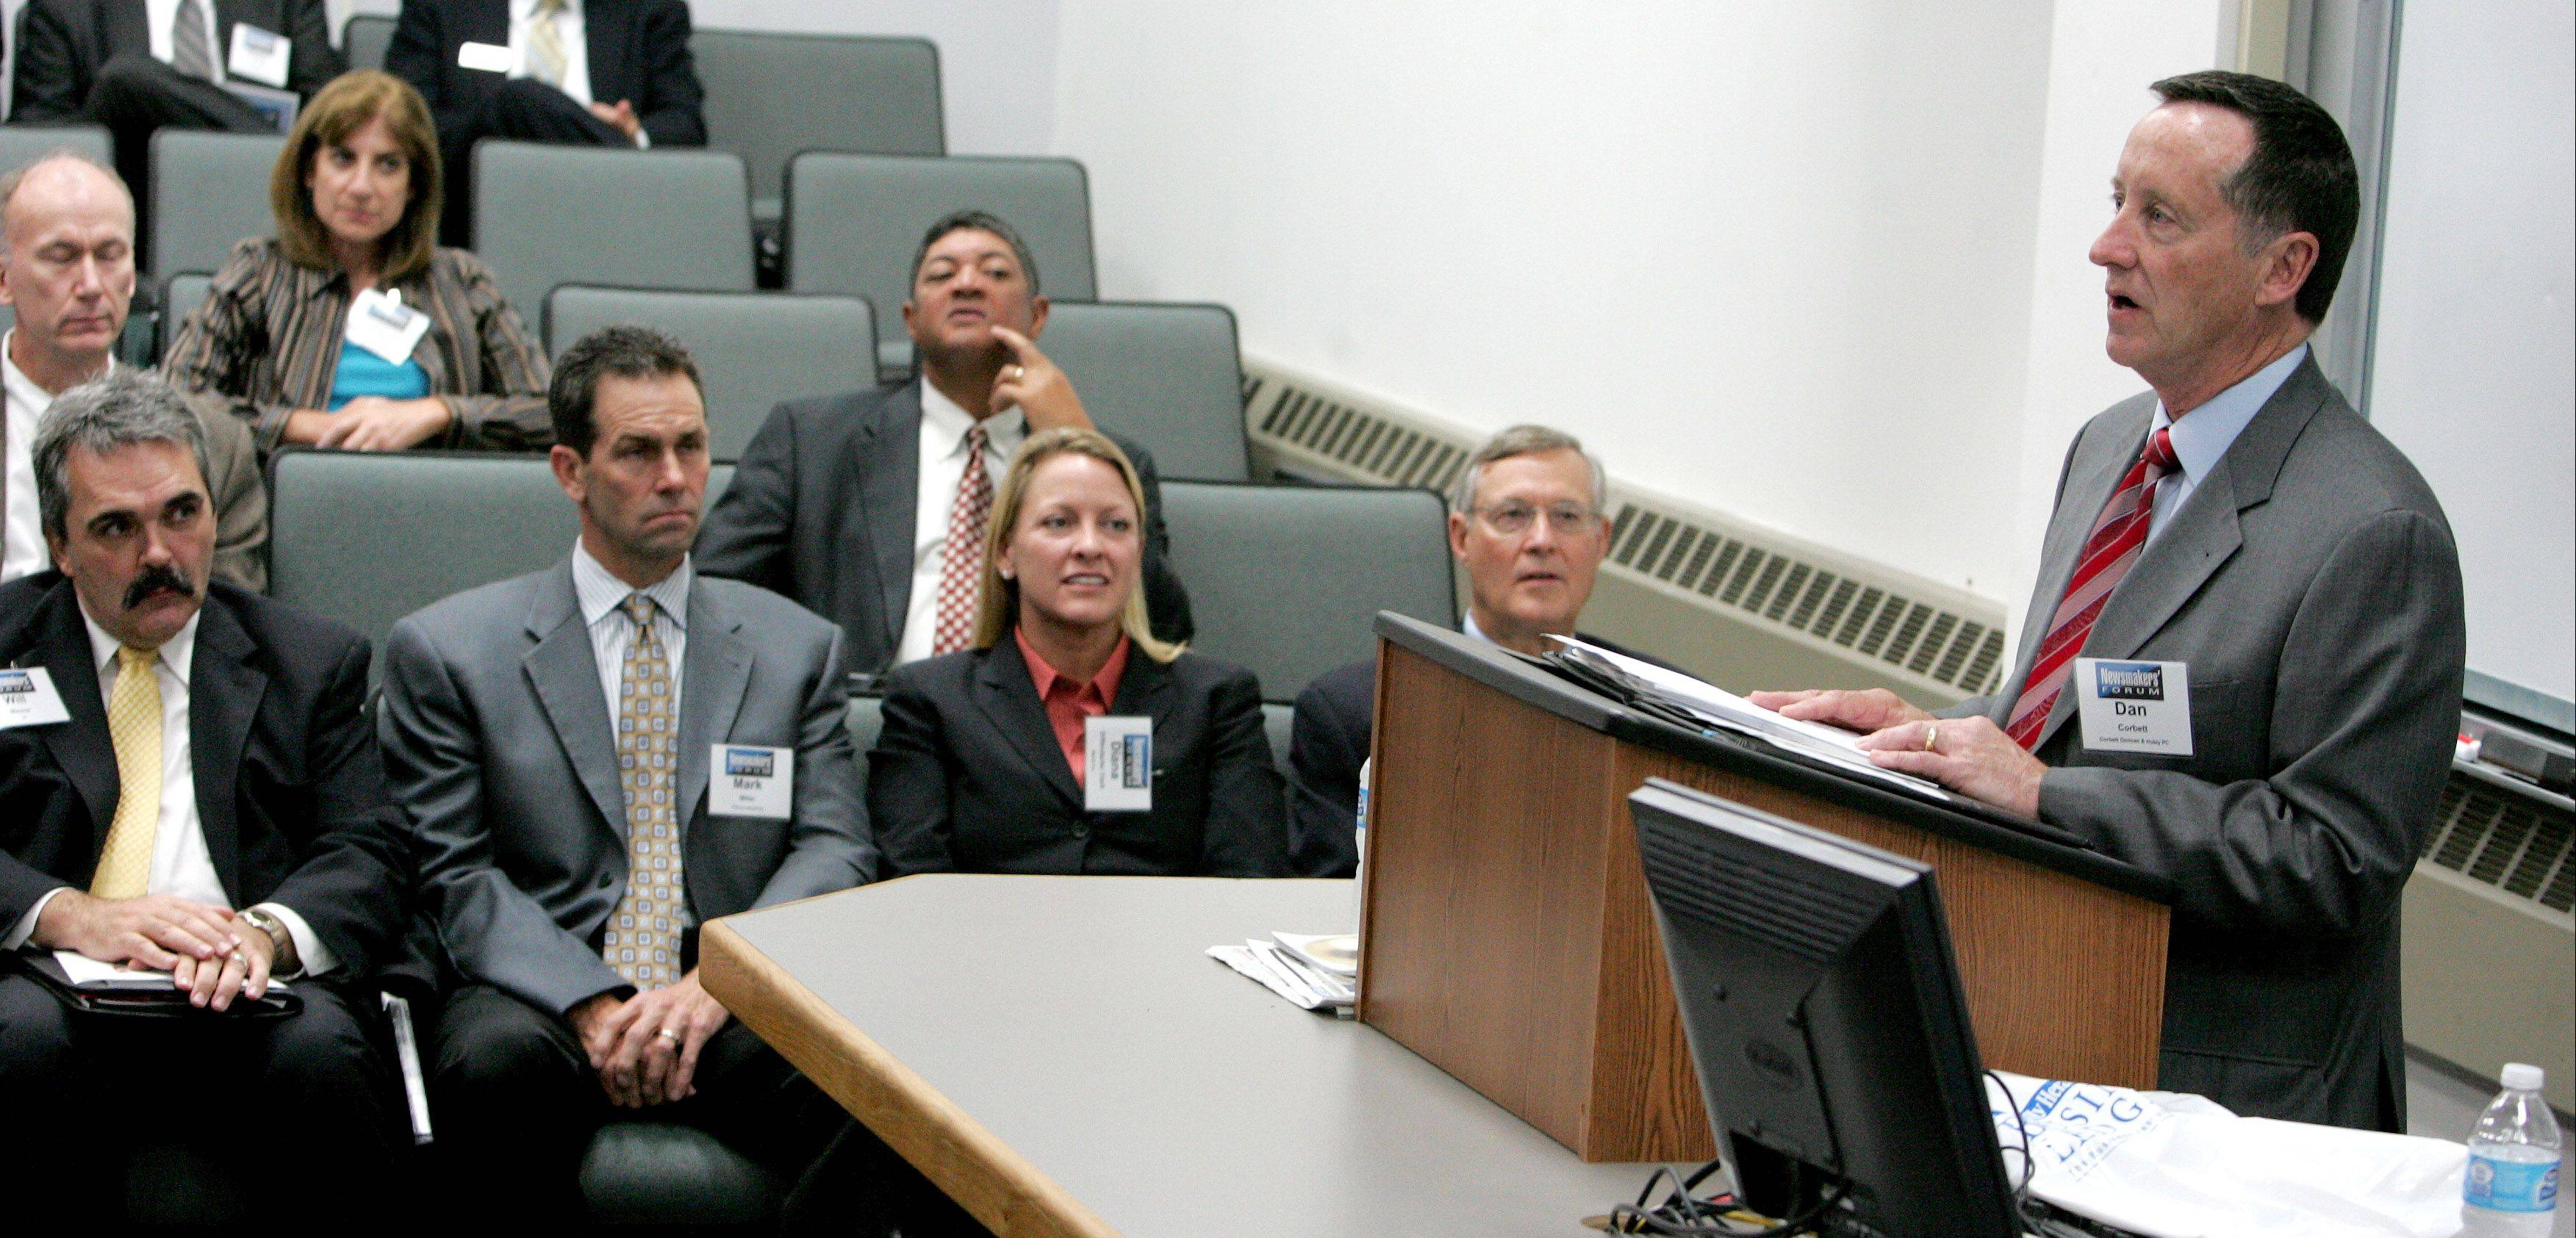 Daniel Corbett of Corbett, Duncan & Hubly PC, right, speaks at the Manufacturing and International Business Newsmakers' Forum at the Illinois Institute of Technology in Wheaton. Also on the panel were, from left, Will Mauer, Illinois Institute of Technology; Mark Miller, Prince Industries and Diana Diffendarfer Clark, Marsh Inc.